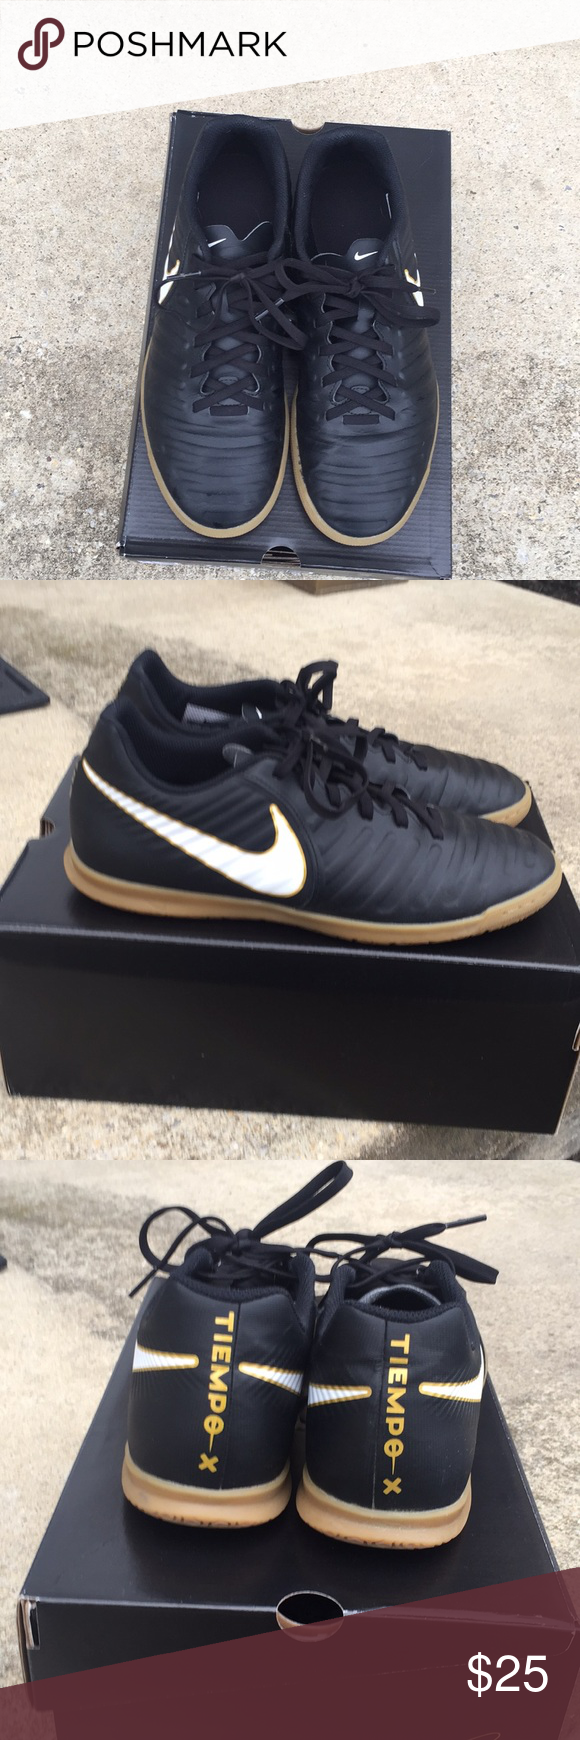 Nike Tiempo X Indoor Soccer Shoes Like New These Nike Tiempo X Rio Iv Shoes Have Only Been Worn Indoors For One Winter Soccer S Soccer Shoes Black Nikes Shoes